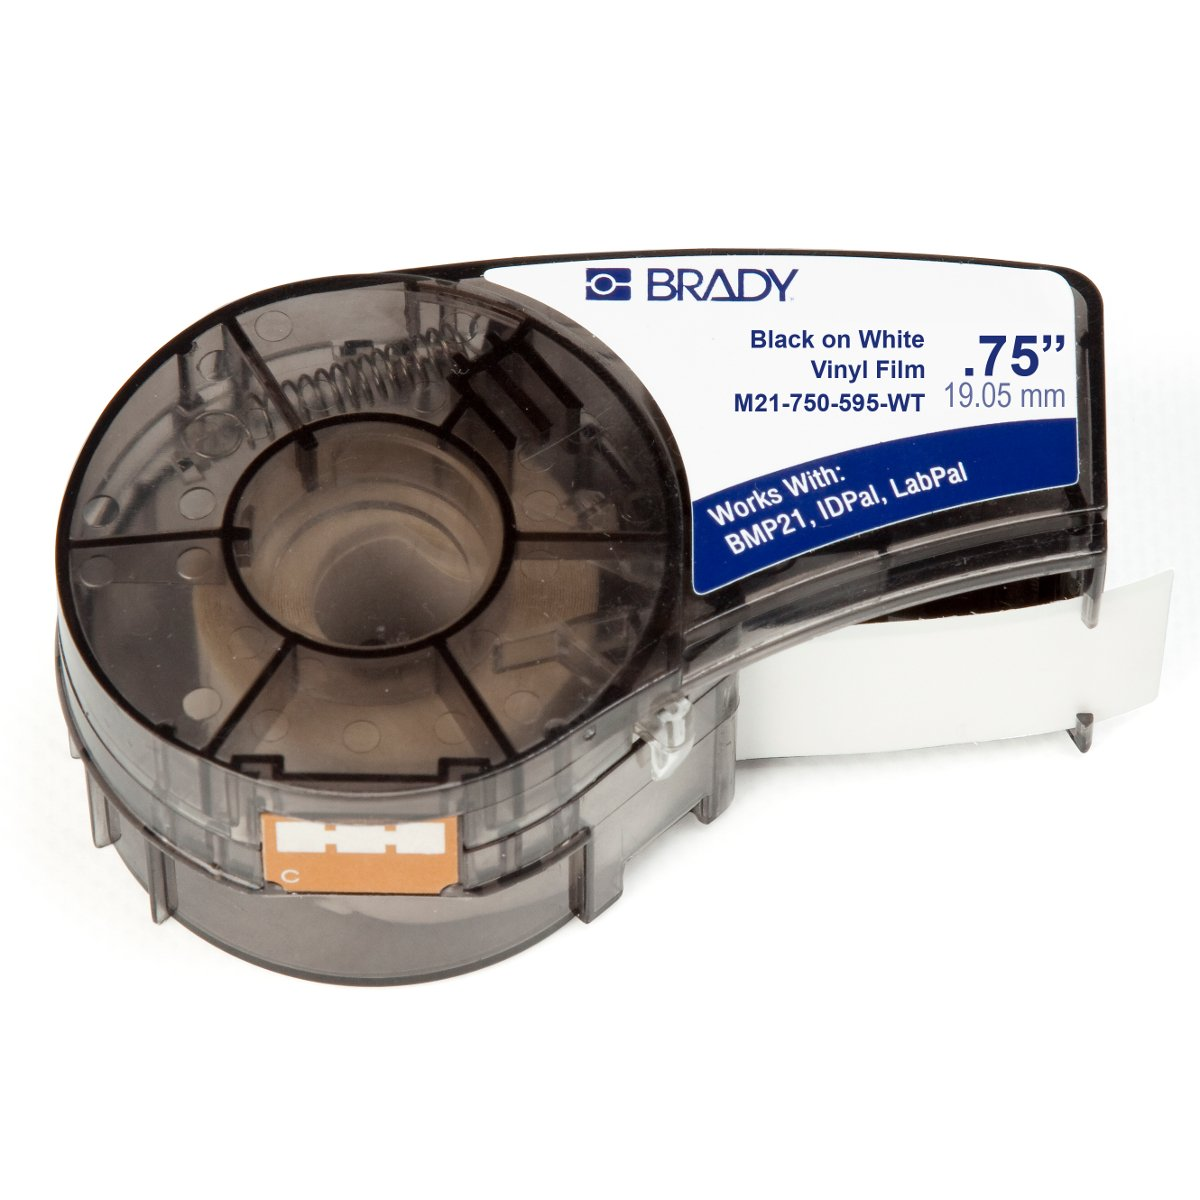 Brady M21-750-595-WT Signs, Labels & Markers Make-Your-Own Sign, Label & Marker Blanks Continuous Tape Cartridges for Printers